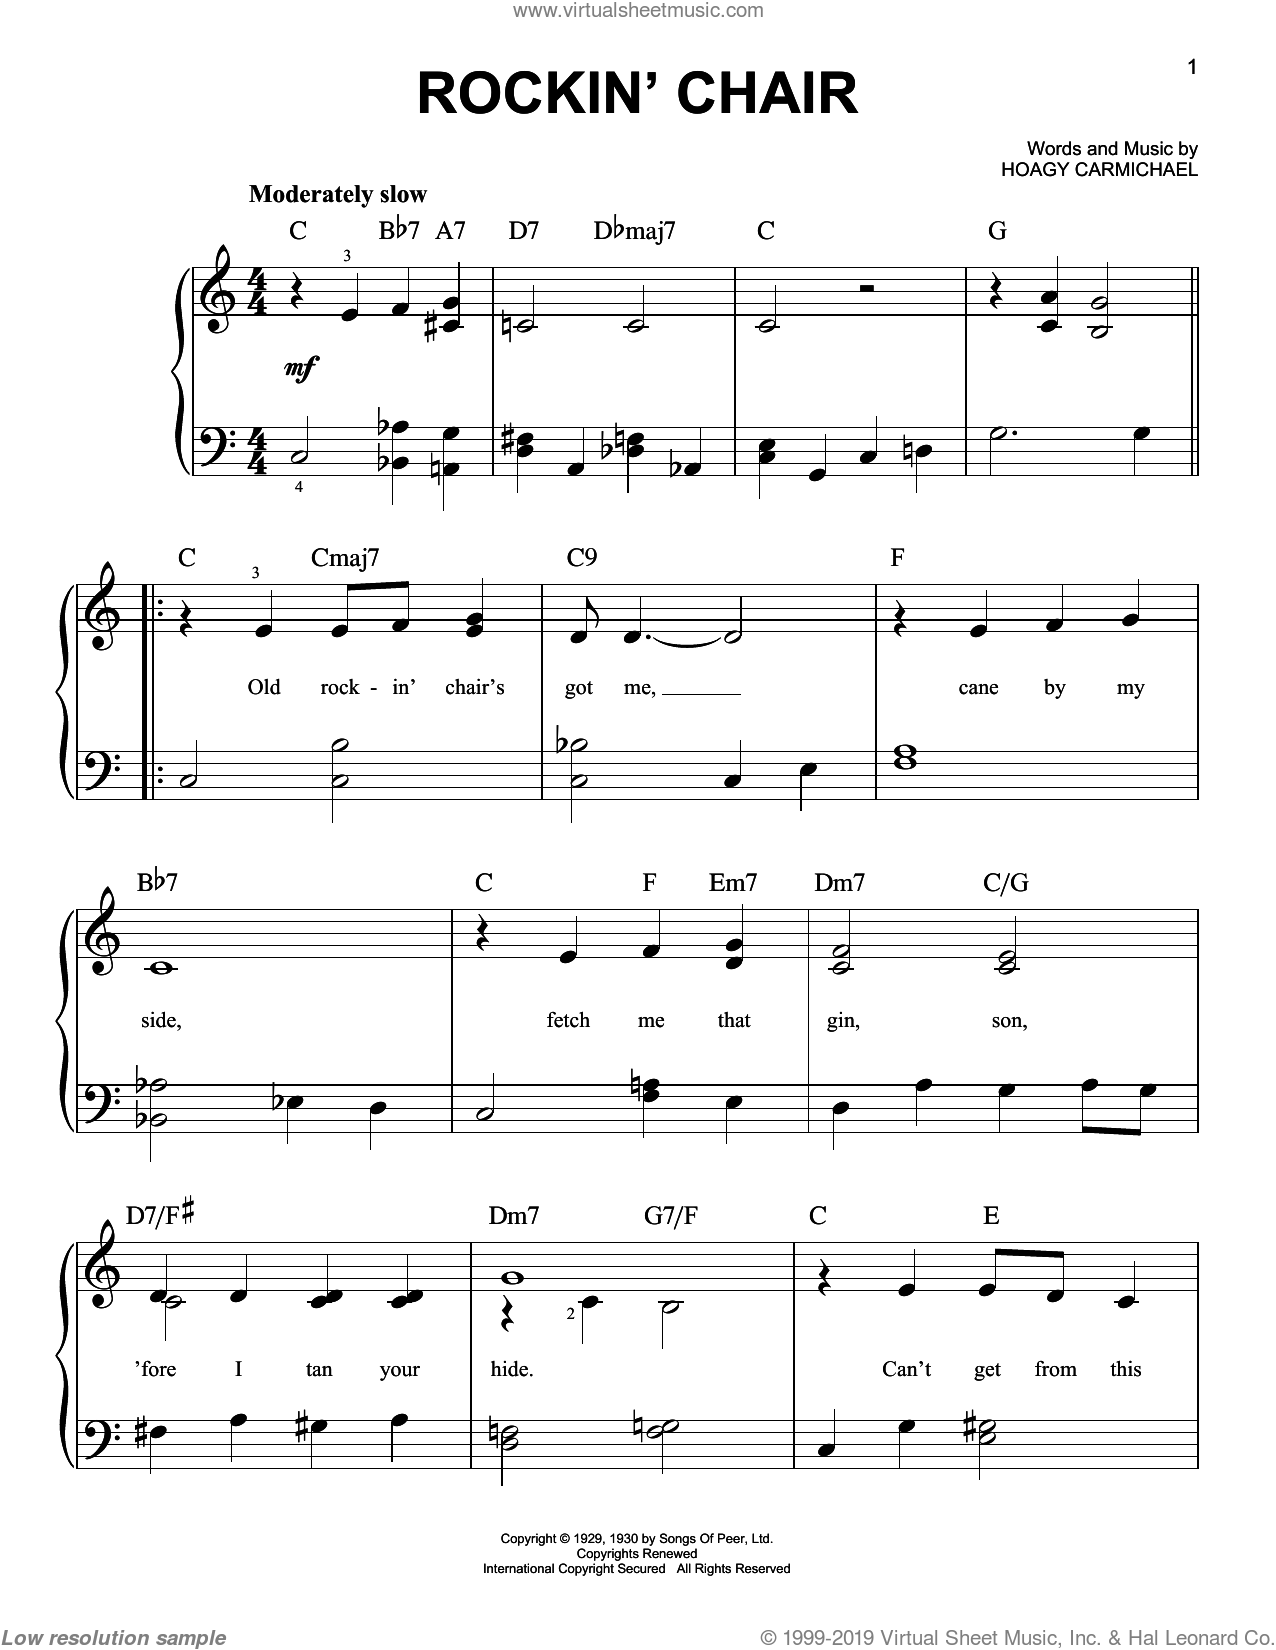 Rockin' Chair sheet music for piano solo by Hoagy Carmichael, easy skill level